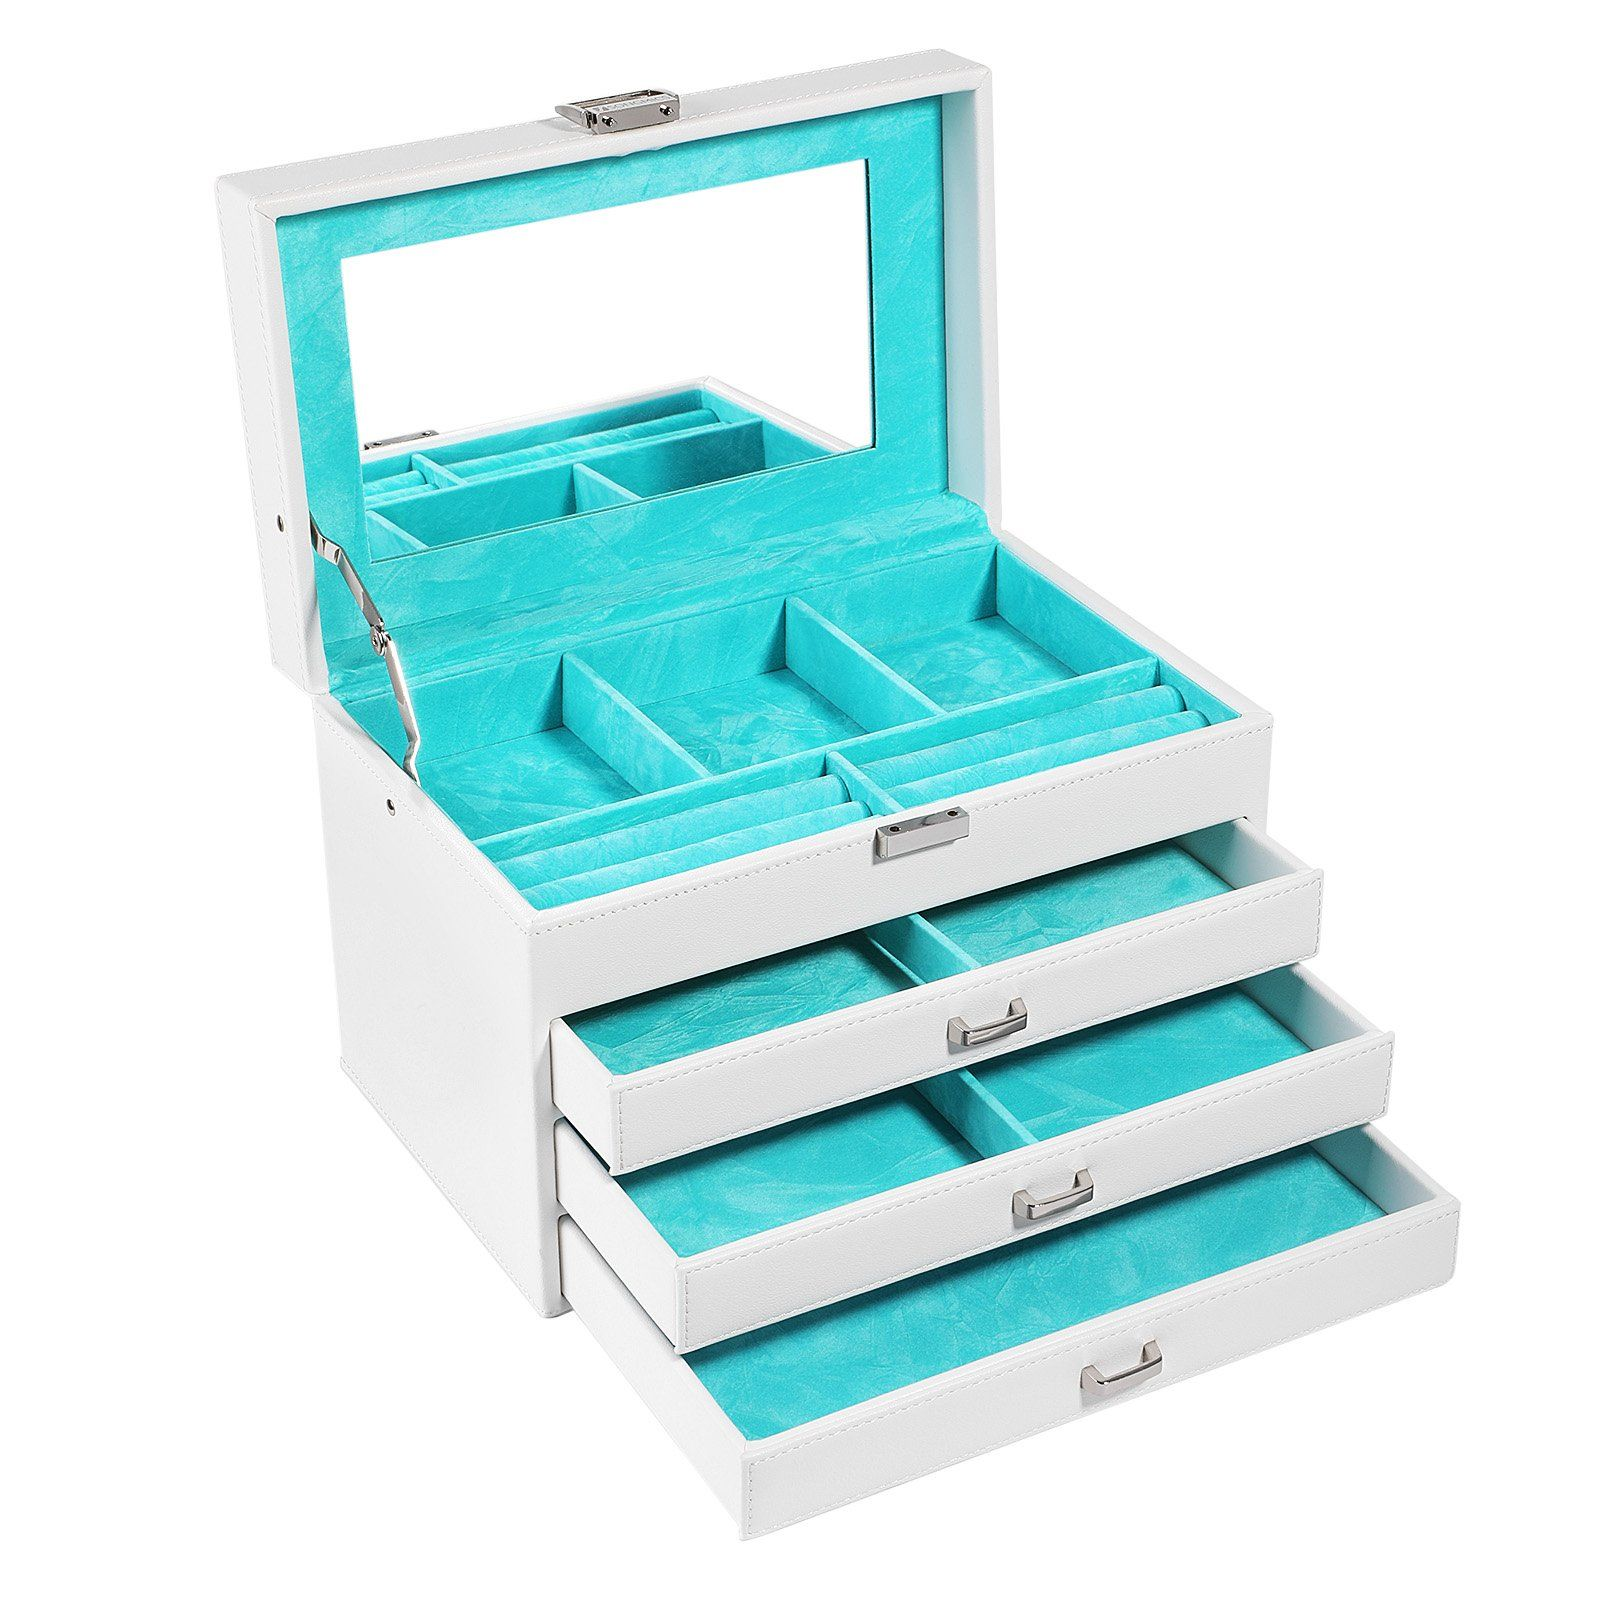 SONGMICS Jewelry Box Organizer Leather Jewelry Storage Case with